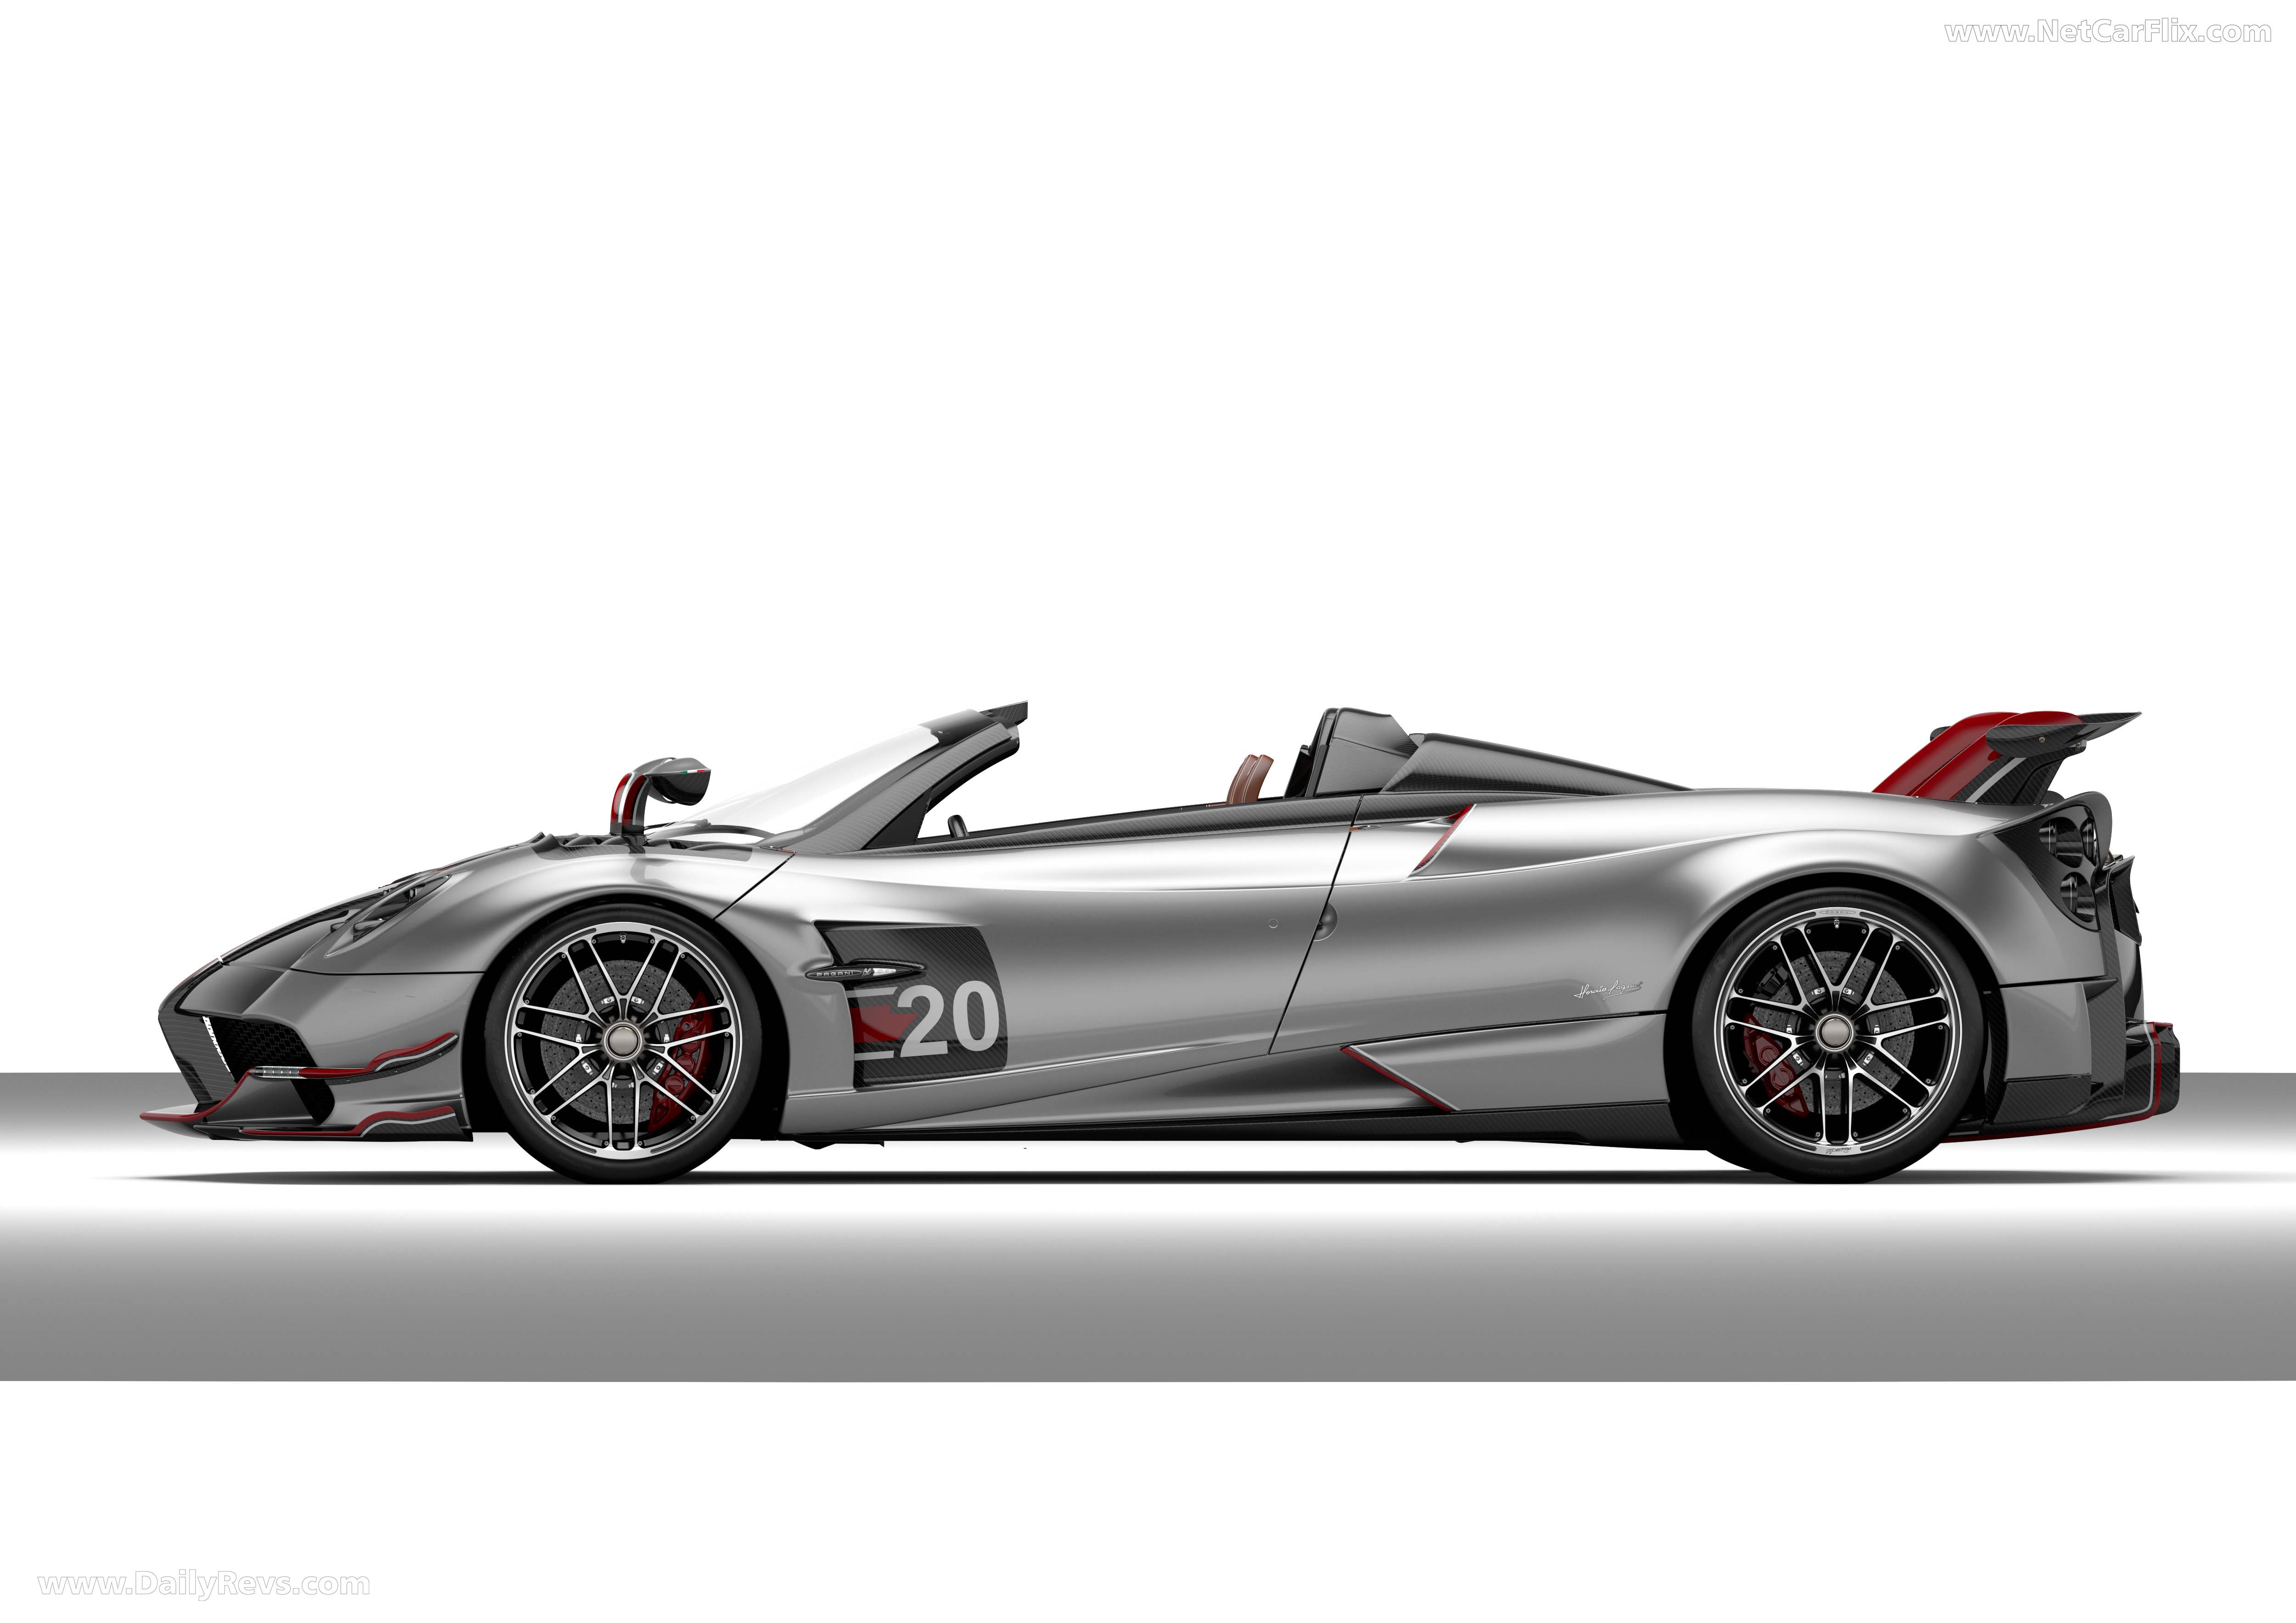 2020 Pagani Huayra Roadster Bc Hd Pictures Videos Specs Information Dailyrevs